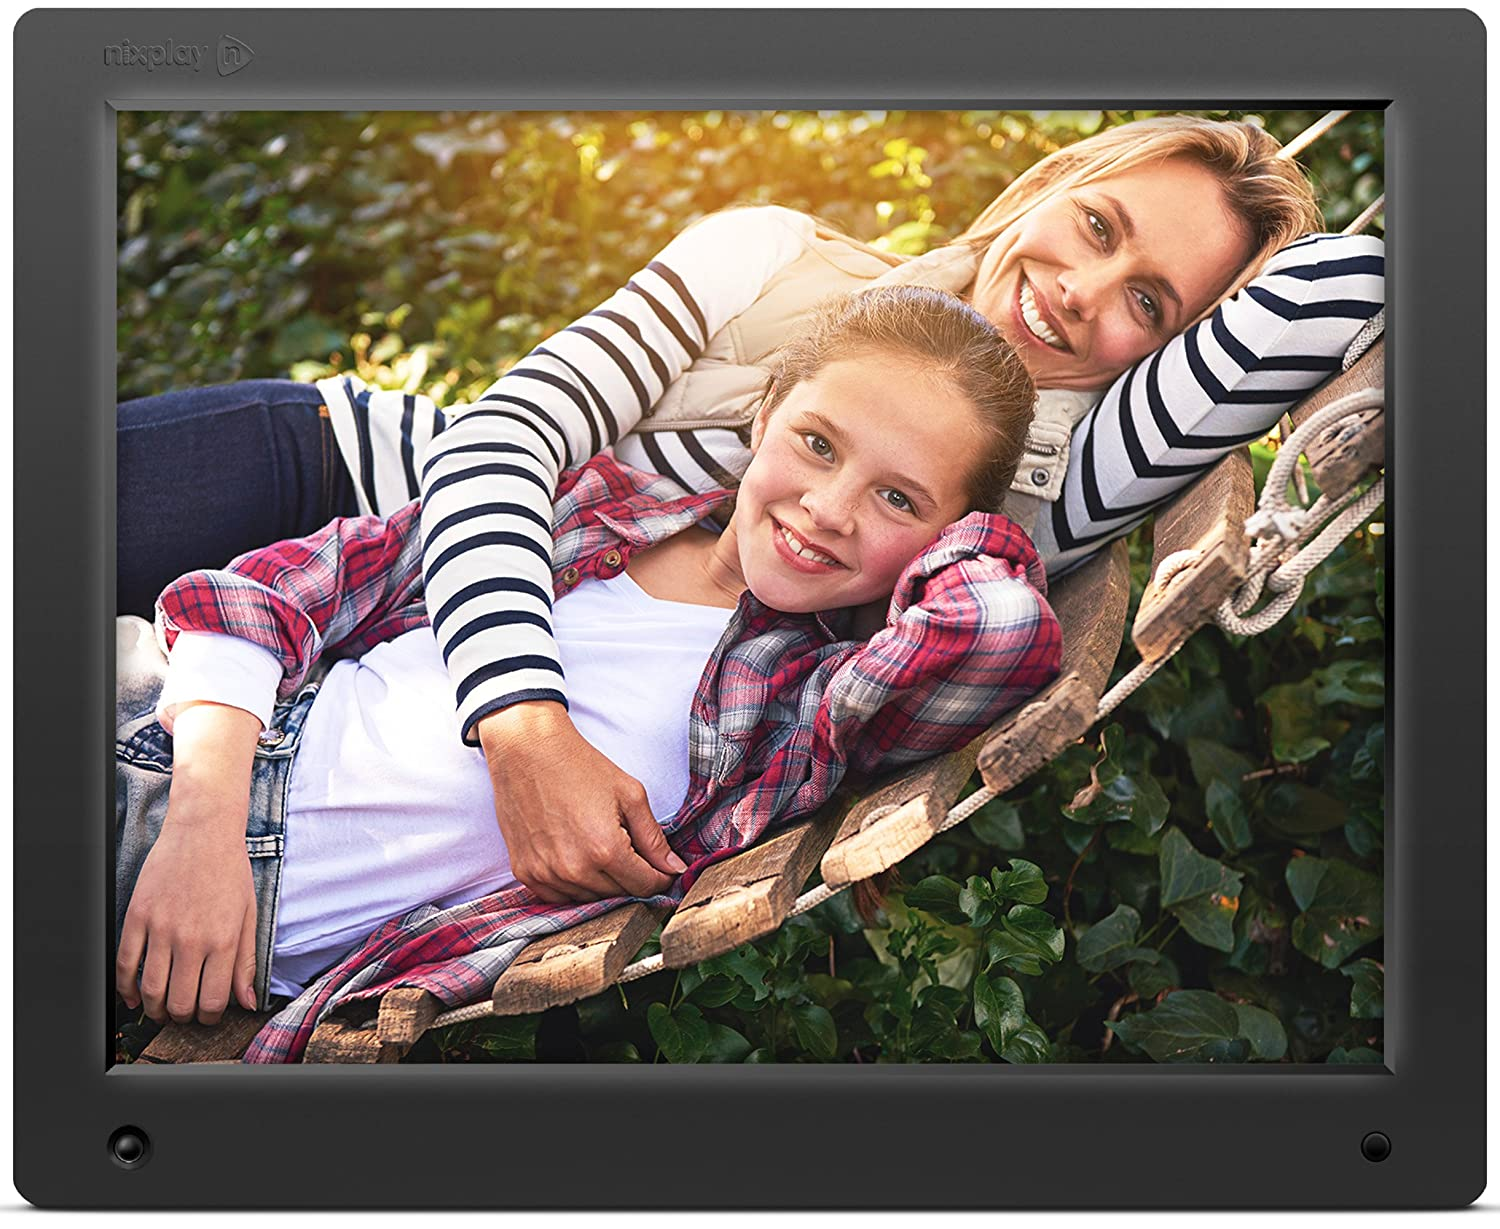 Amazon nixplay original 15 inch wifi cloud digital photo amazon nixplay original 15 inch wifi cloud digital photo frame iphone android app email facebook dropbox instagram picasa w15a camera jeuxipadfo Images